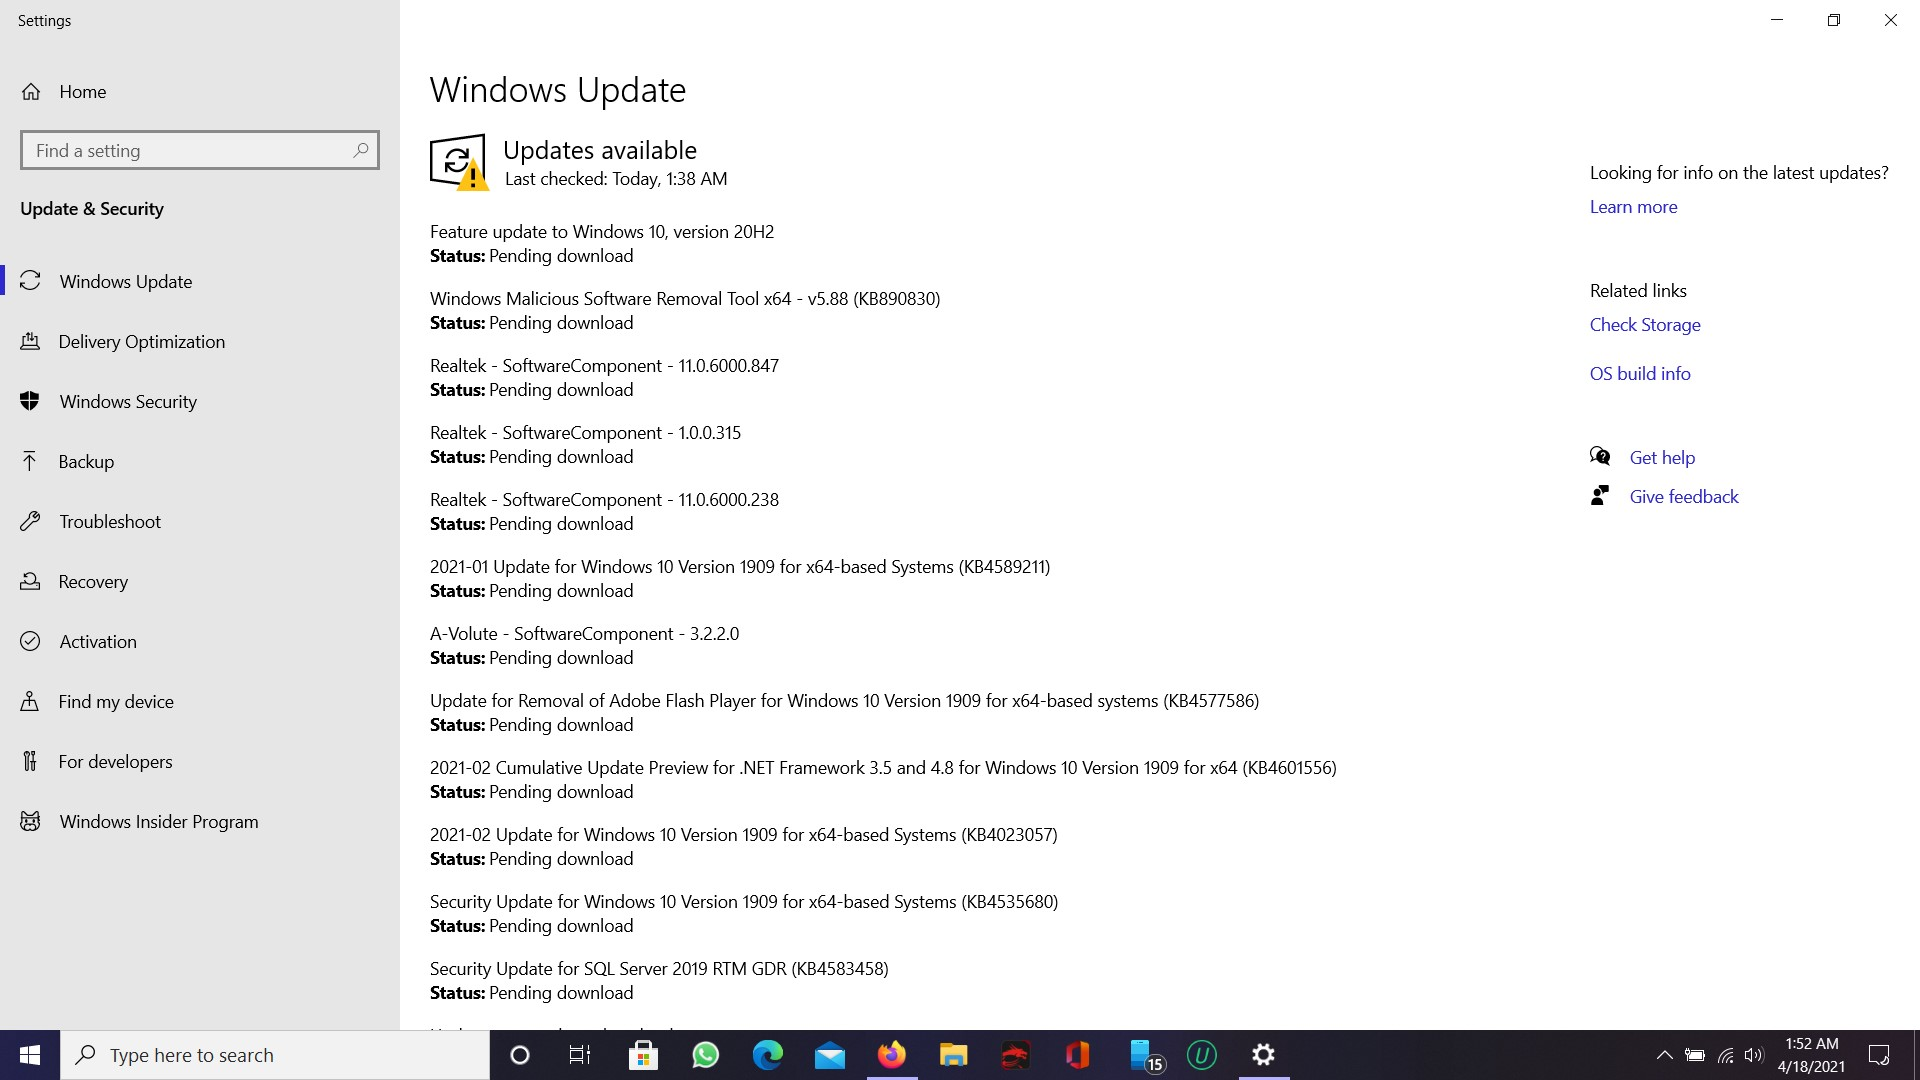 Windows Update causes computer to restart while downloading windows update 20H2 0c83ecdb-6427-4478-bf7c-8ba9c81ecb7b?upload=true.jpg